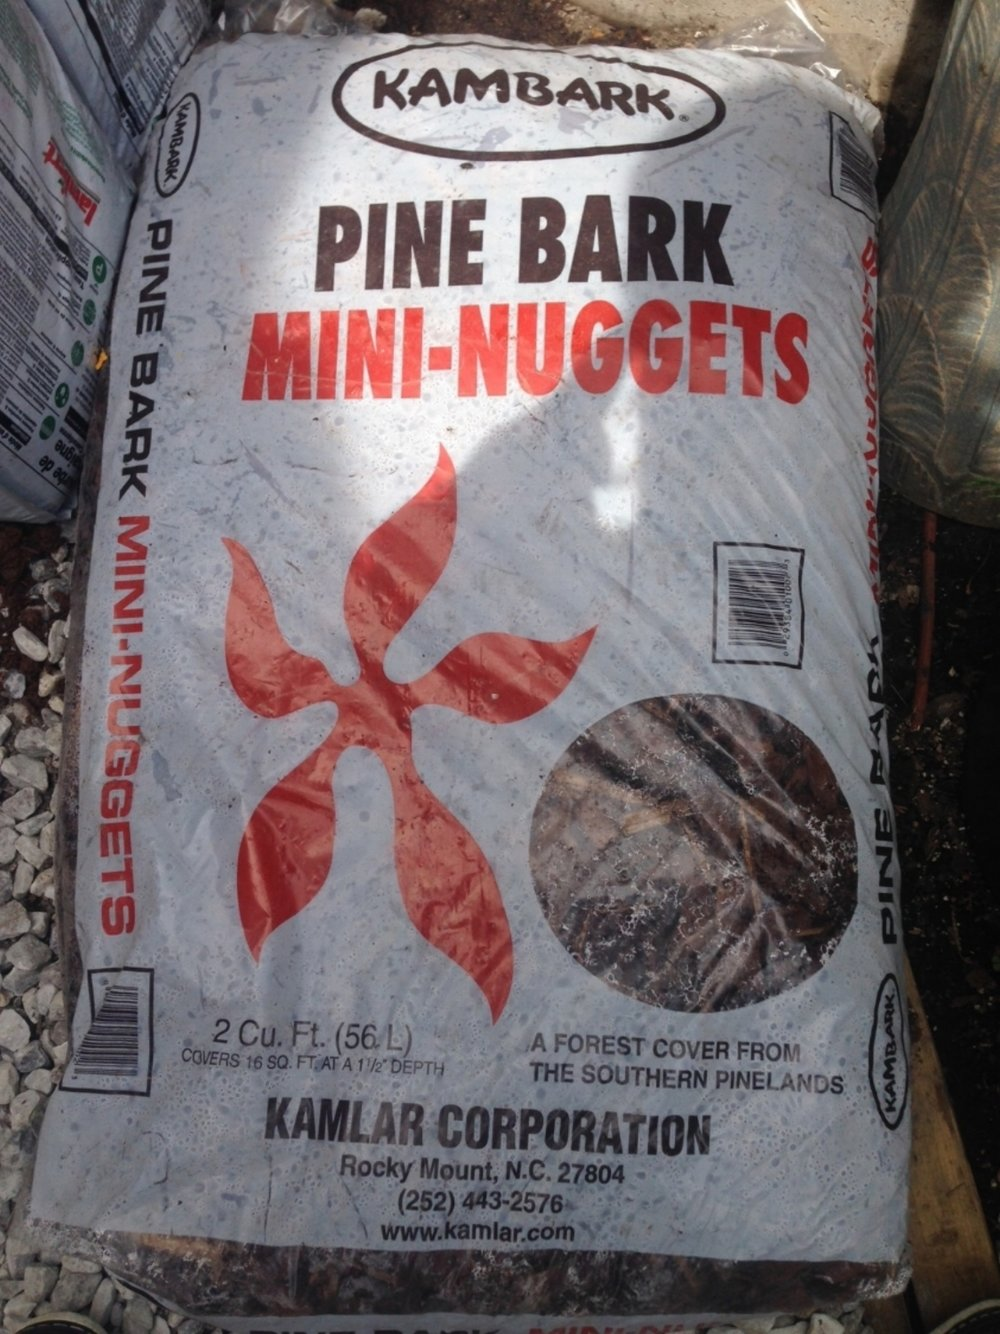 KamBark Pine Bark Mini Nuggets